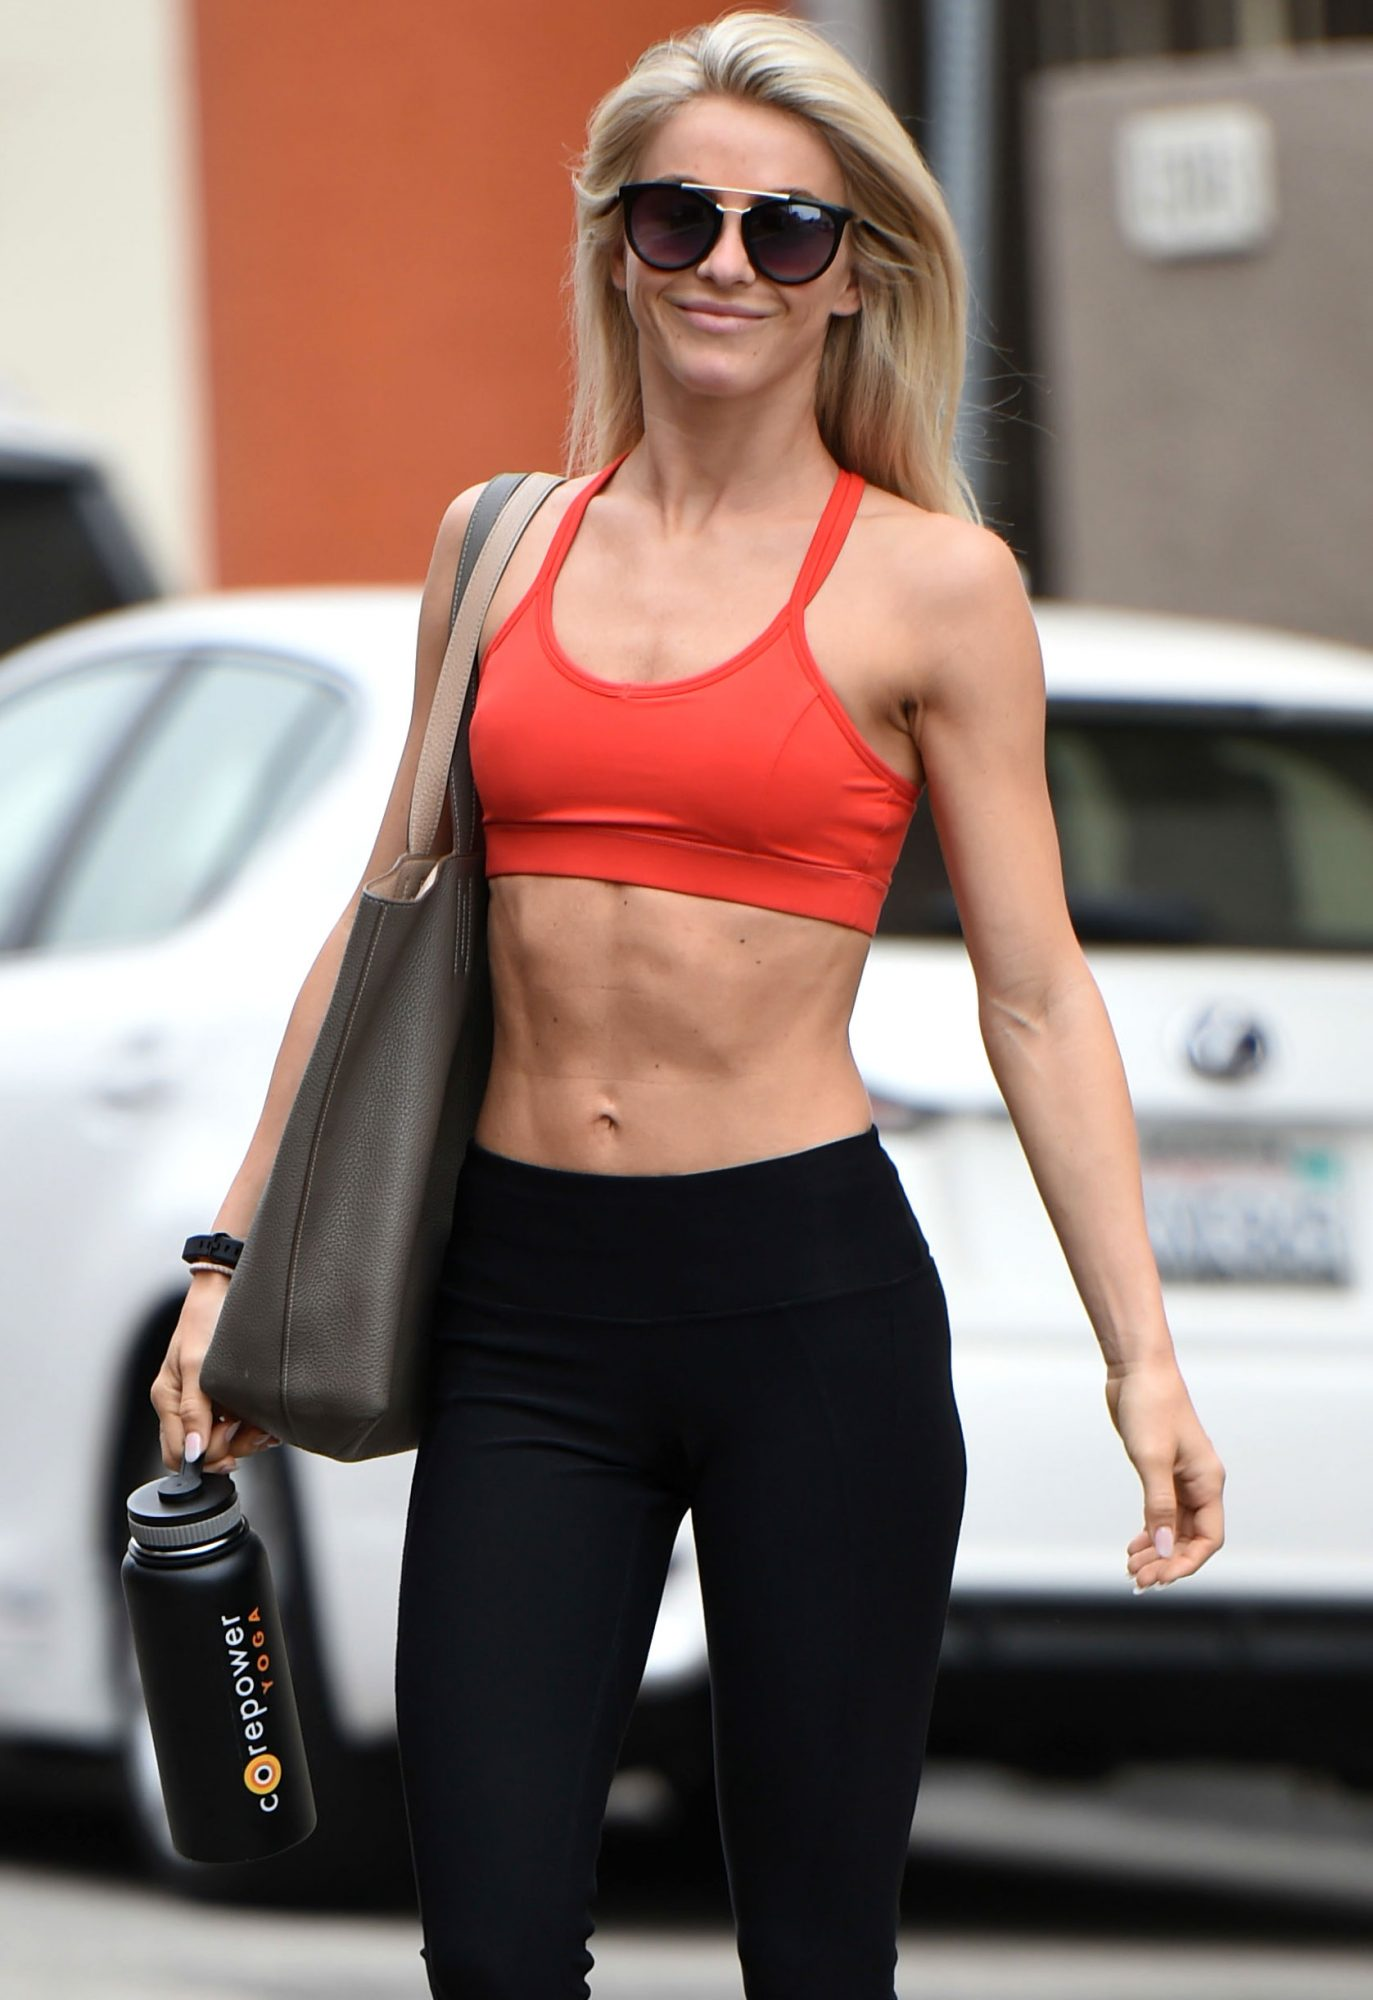 julianne-hough-celeb-abs